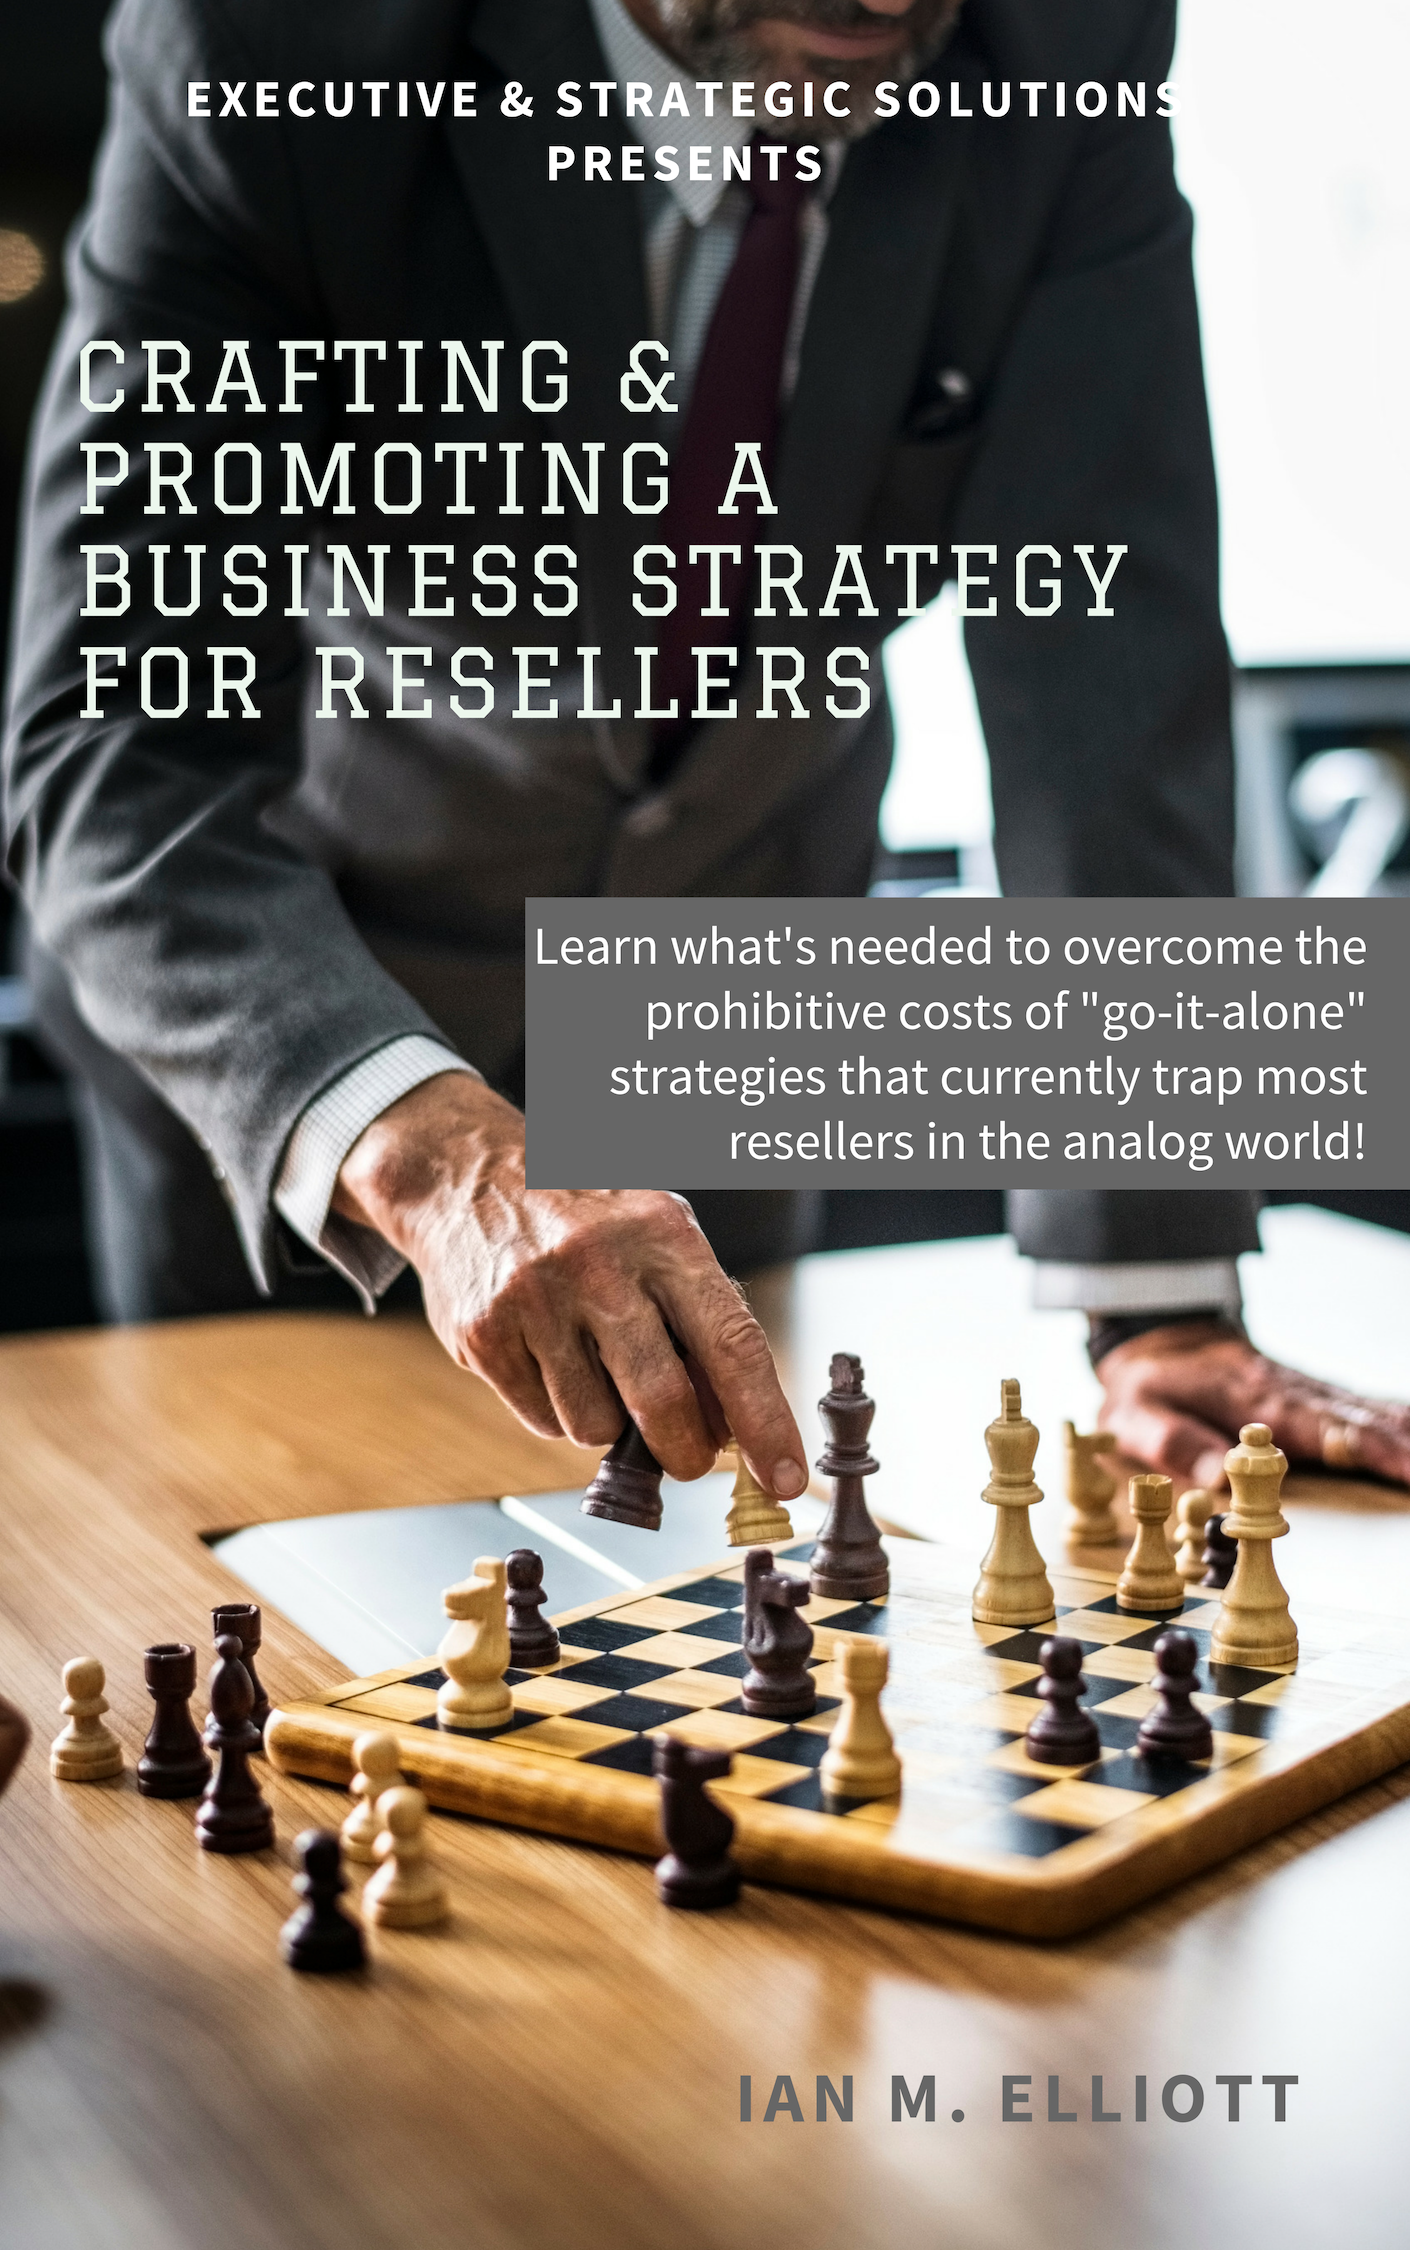 Book 6 - Crafting & Promoting the Resellers Business Strategy